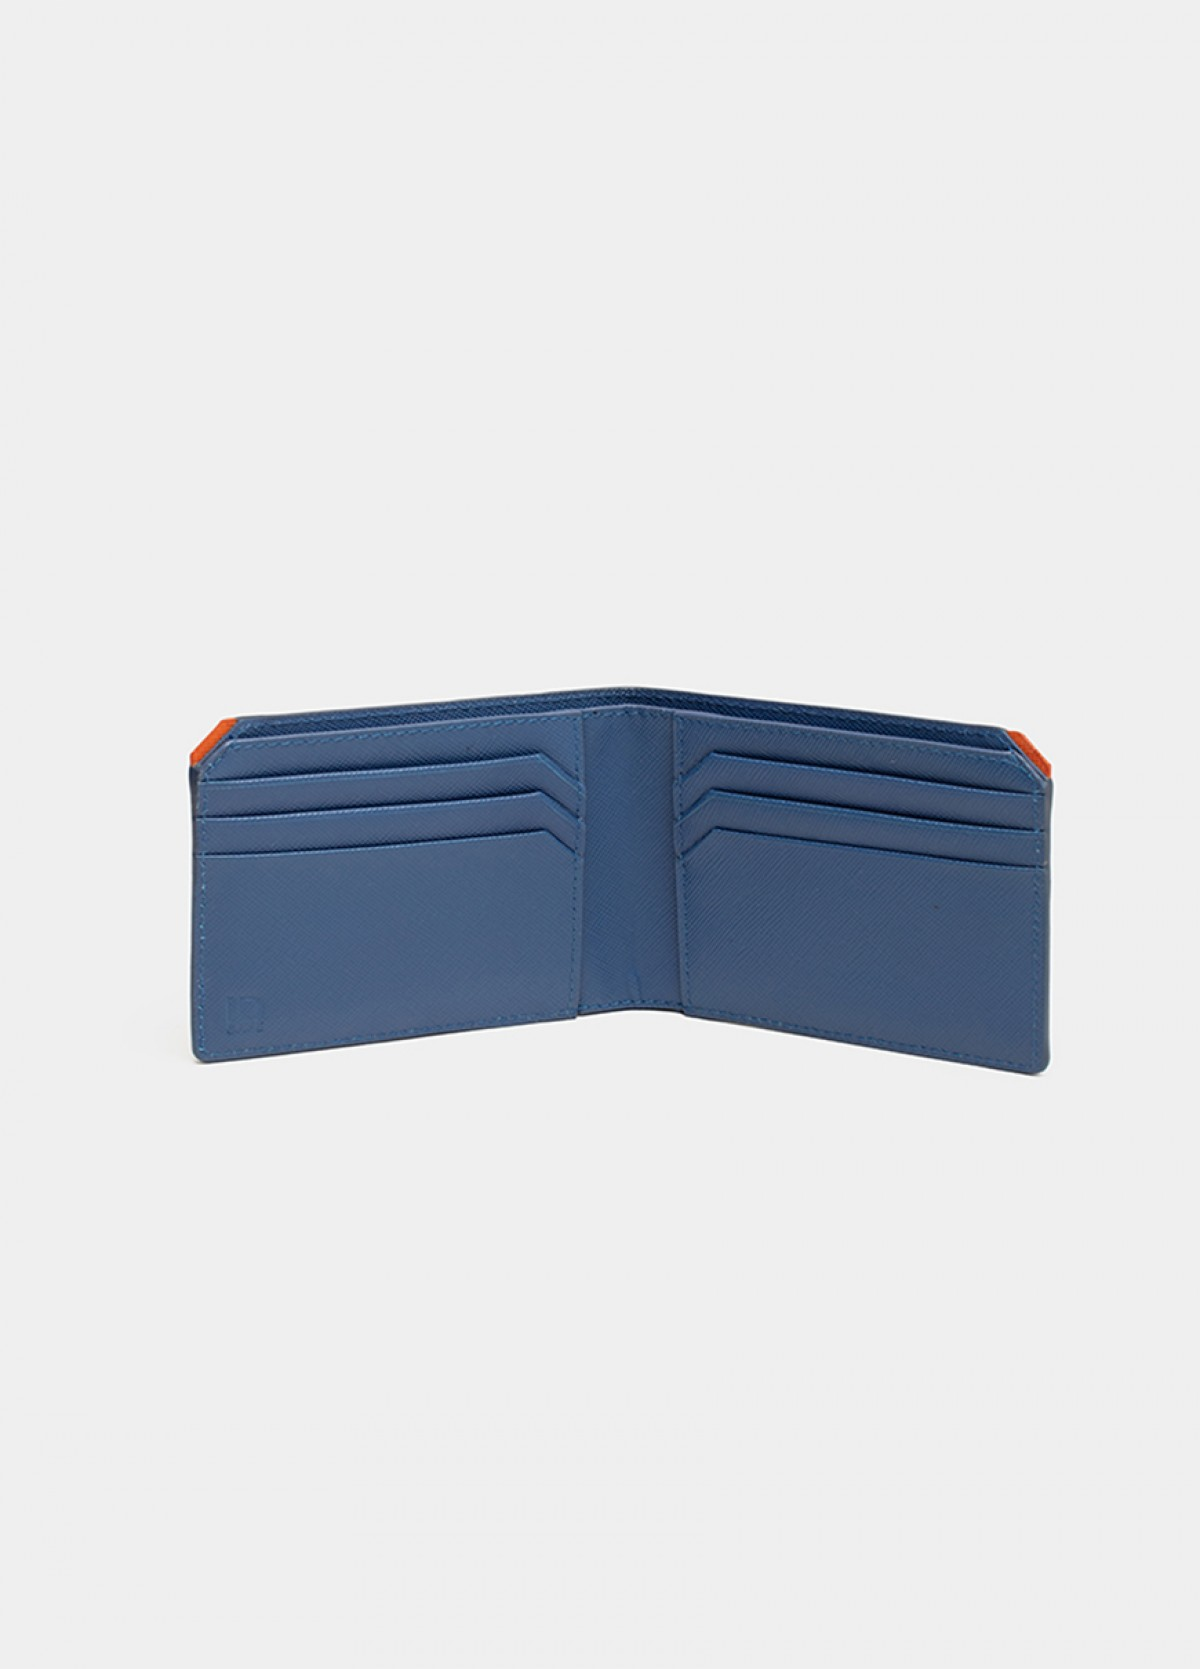 The Blue Leather Wallet